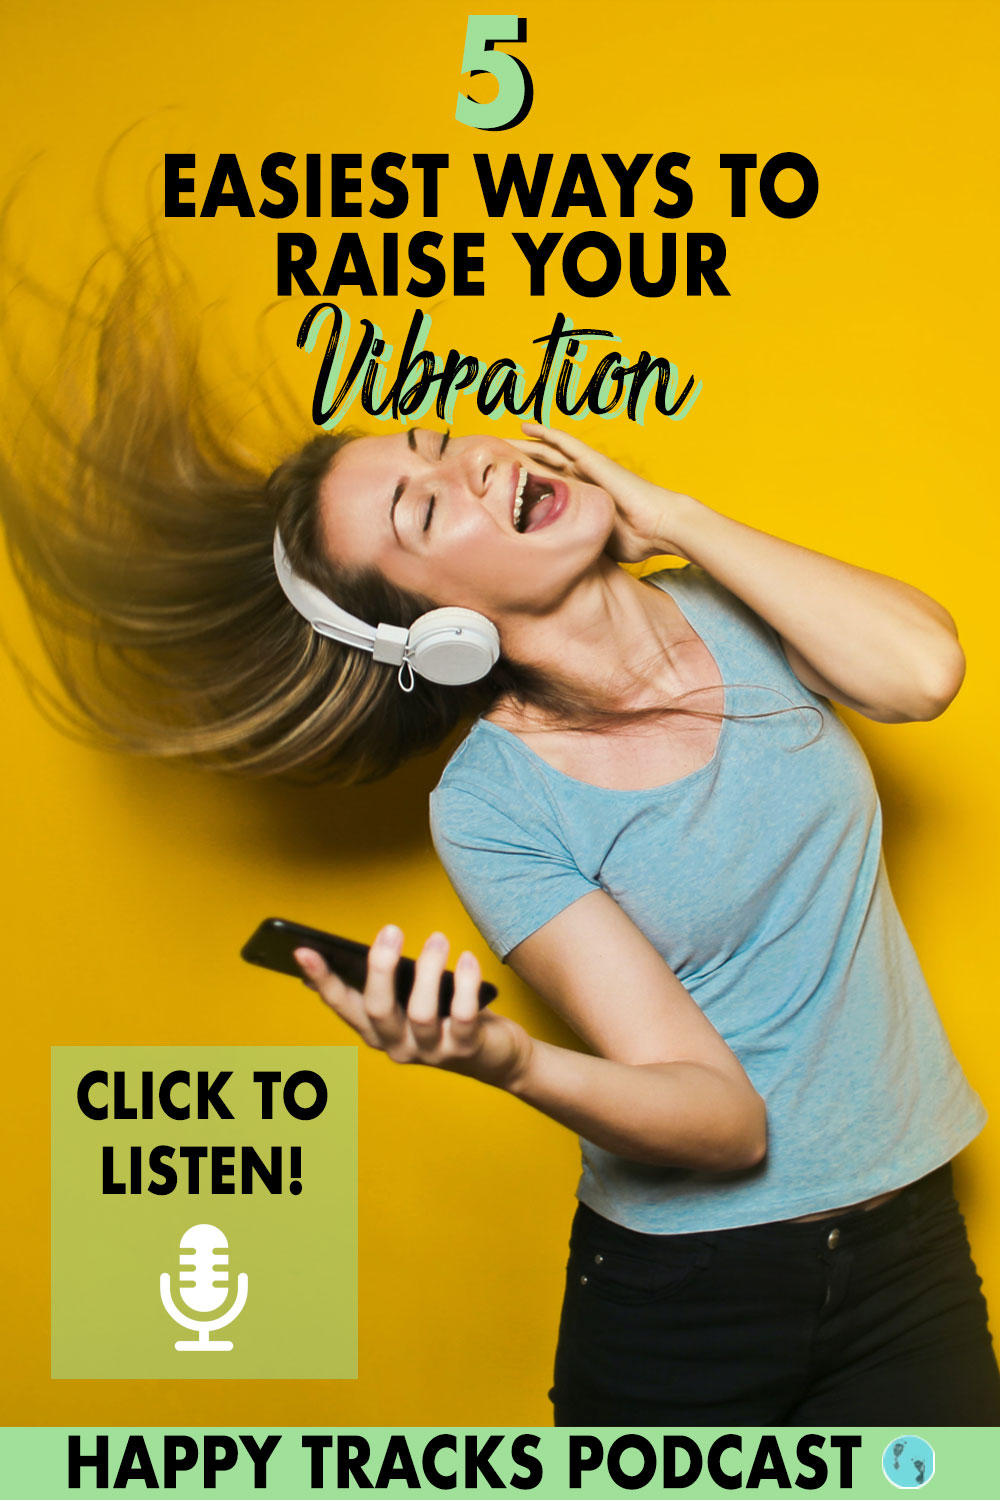 Raise your vibration and you'll take control your life. The best part? Raising your vibe is so simple. Click to listen to this podcast episode that covers the most basic ways to raise your frequency in just seconds.